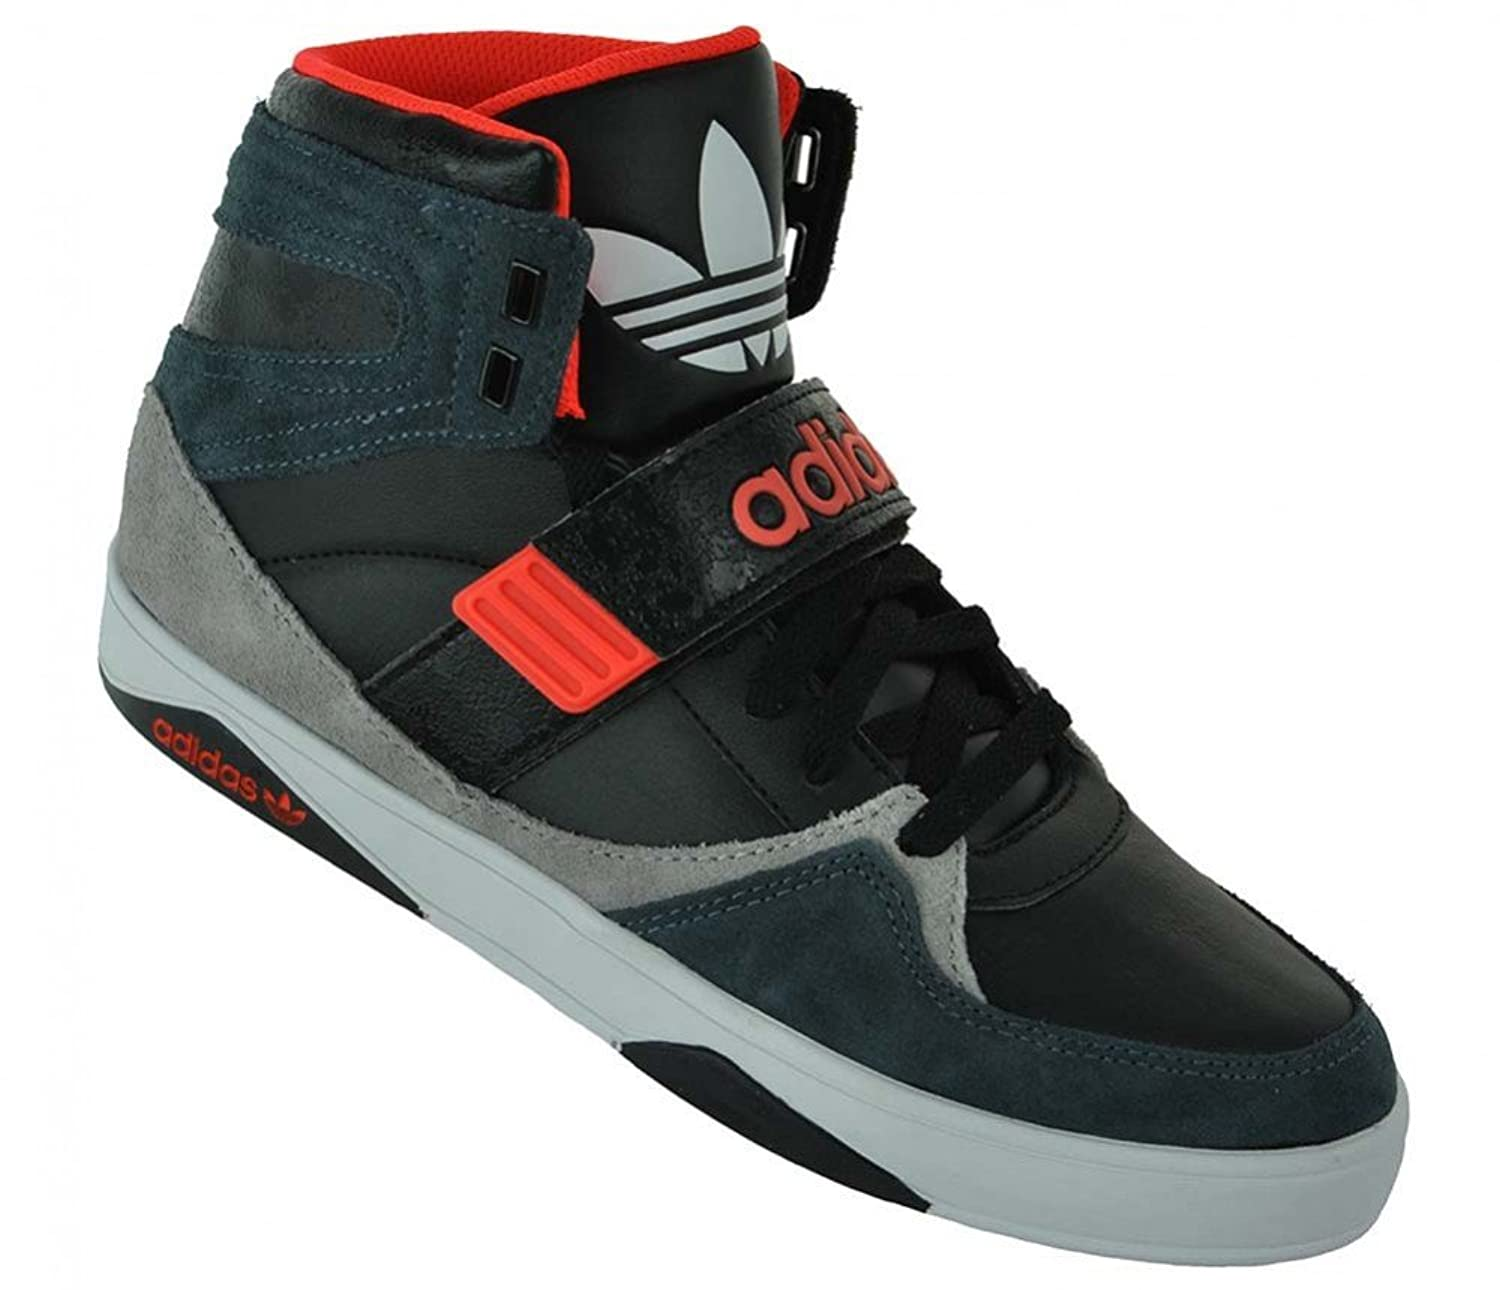 Adidas Space Diver 2.0. Originals Uomo High Top Scarpa da tennis basket Nero